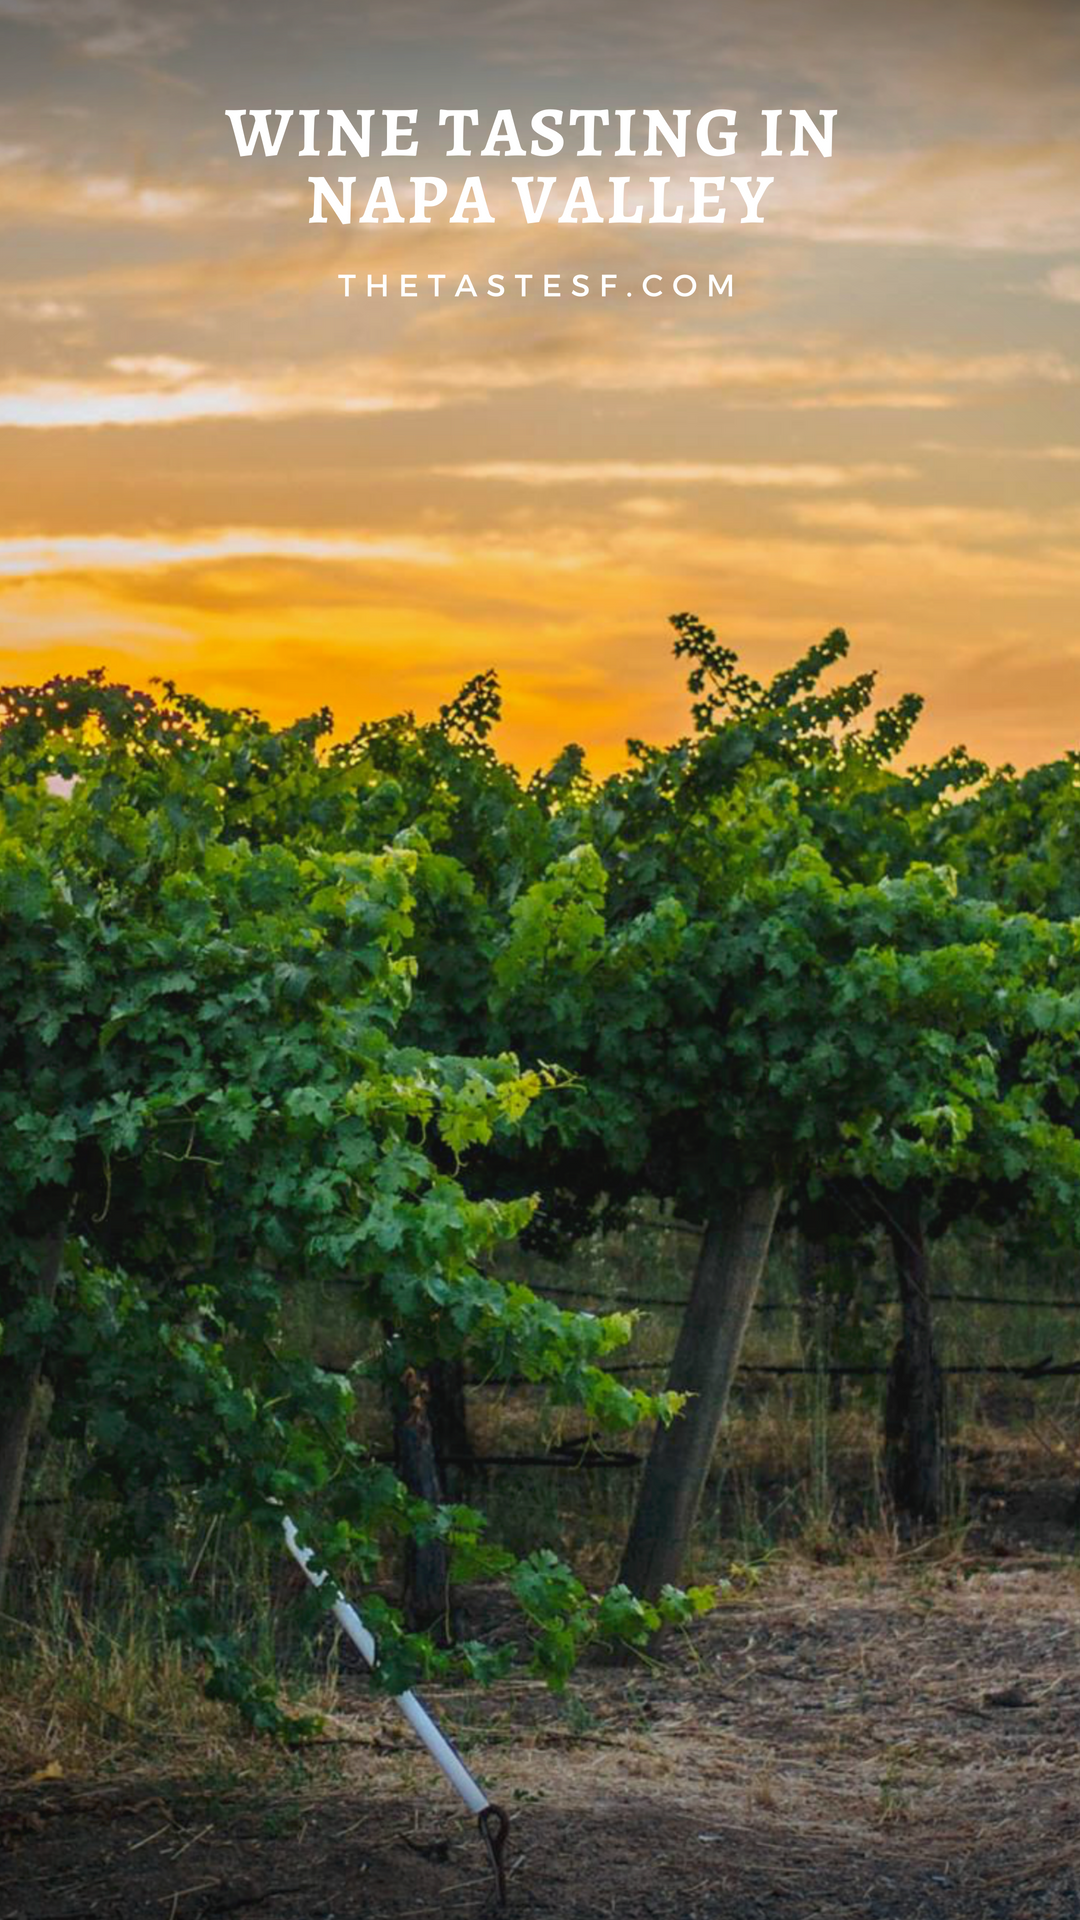 Napa Valley Wine Tasting Guide | Travel Inspiration | The